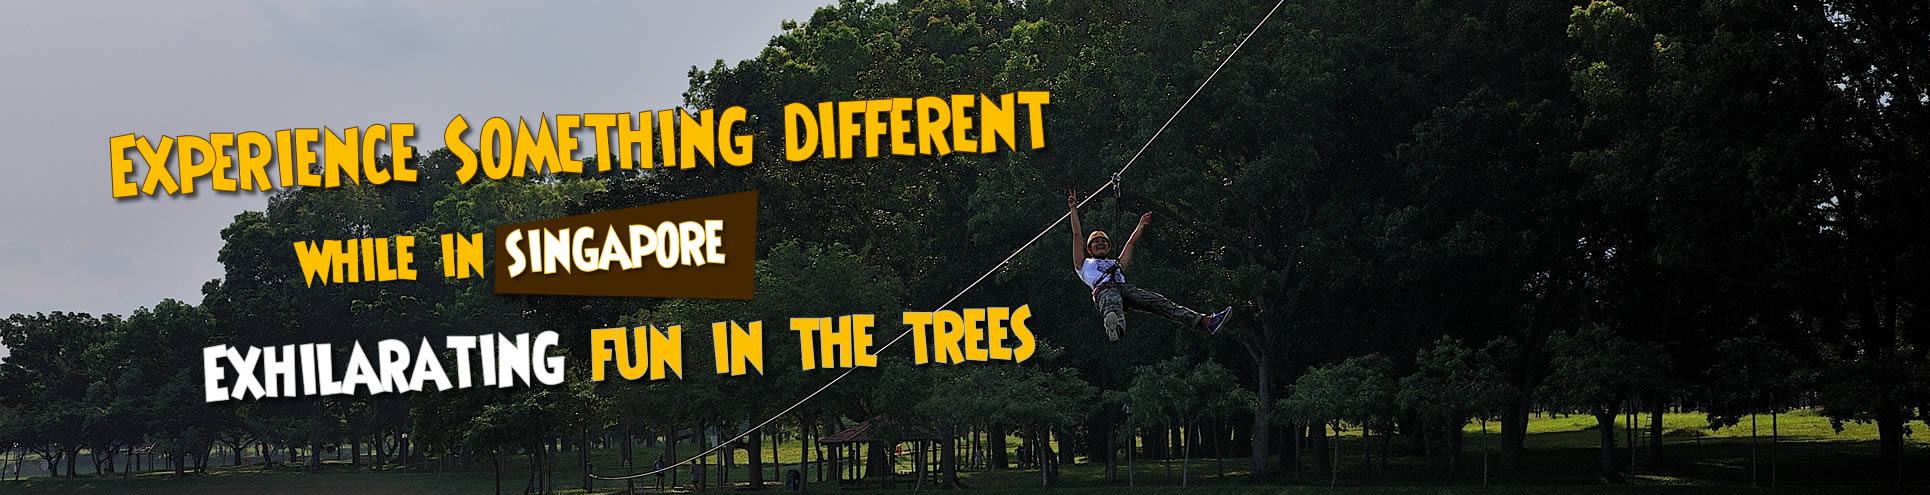 singapore_fun-in_trees_for_tourists